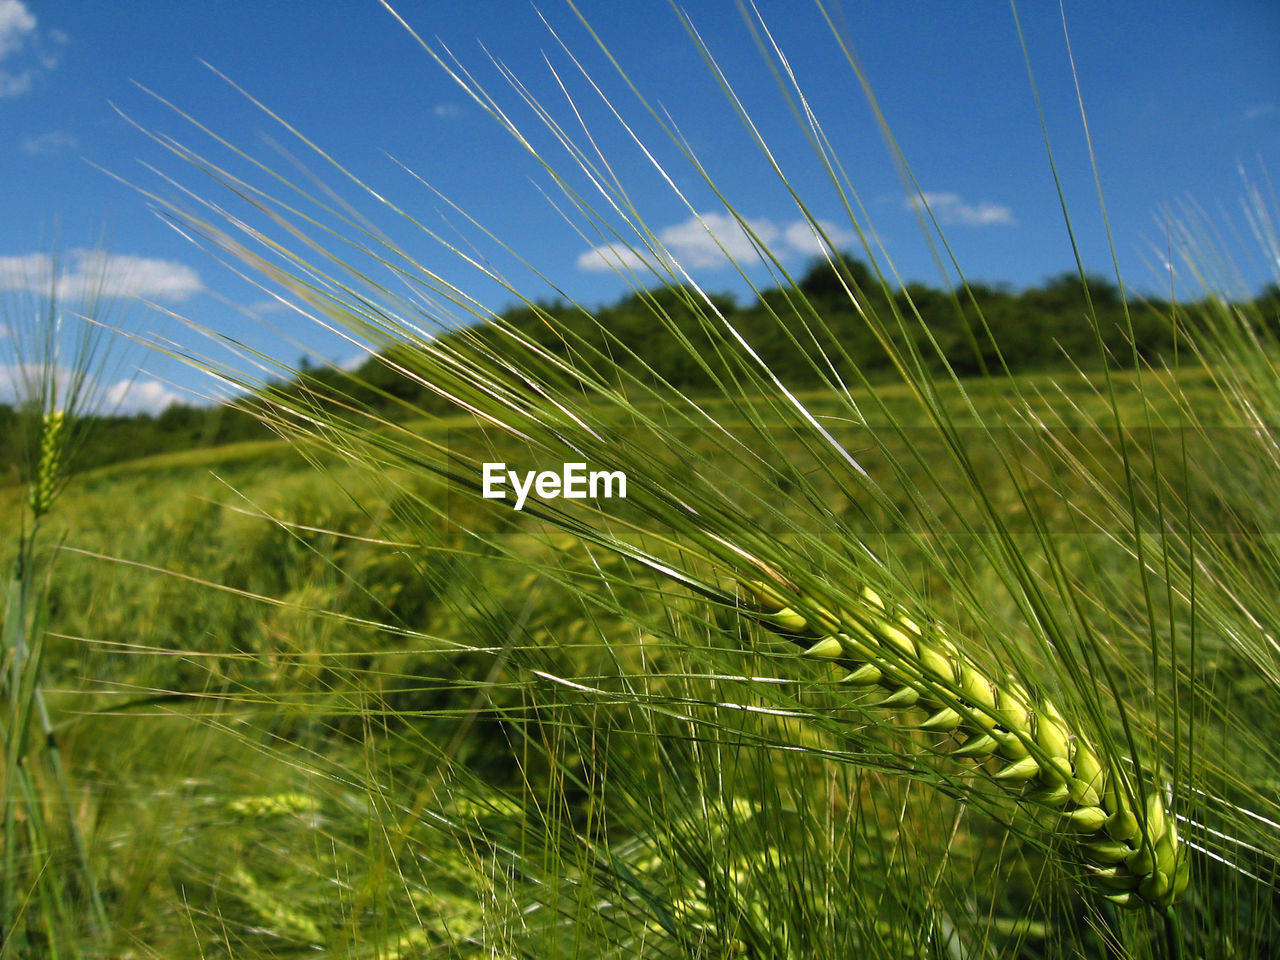 growth, nature, no people, field, grass, day, close-up, agriculture, beauty in nature, green color, outdoors, plant, tranquility, ear of wheat, sky, cereal plant, wheat, clear sky, freshness